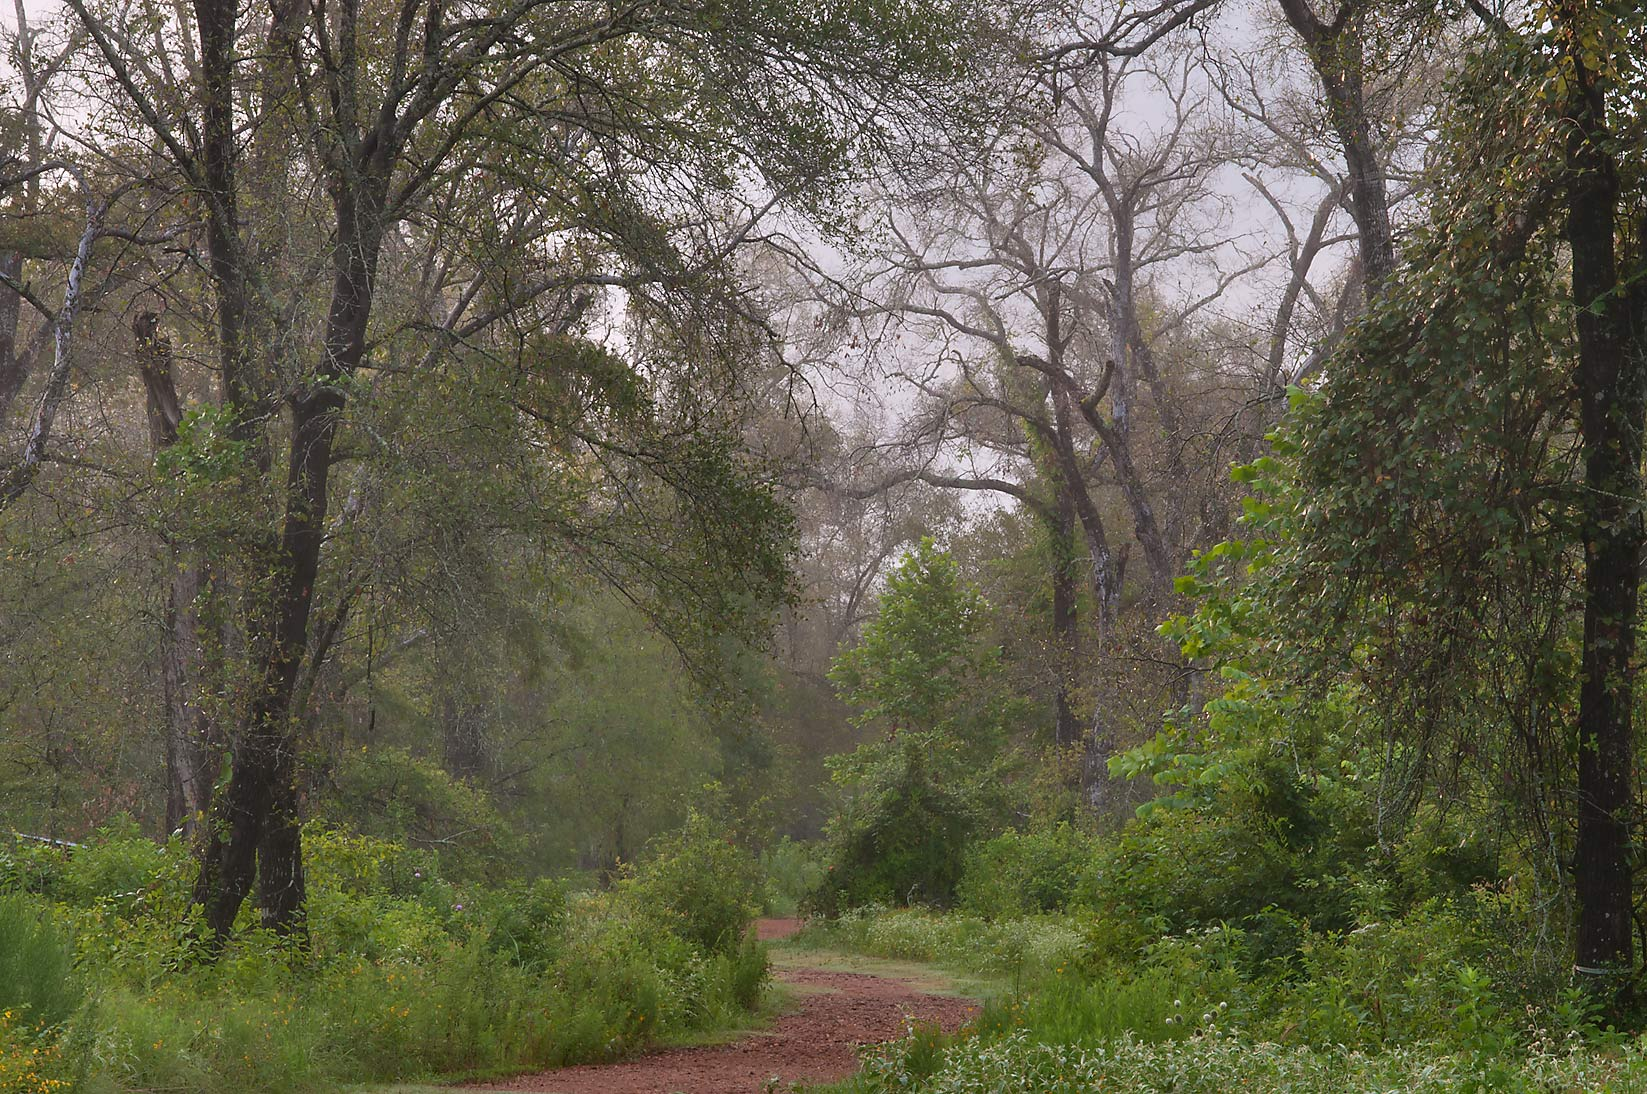 Iron Bridge Trail in Lick Creek Park. College Station, Texas